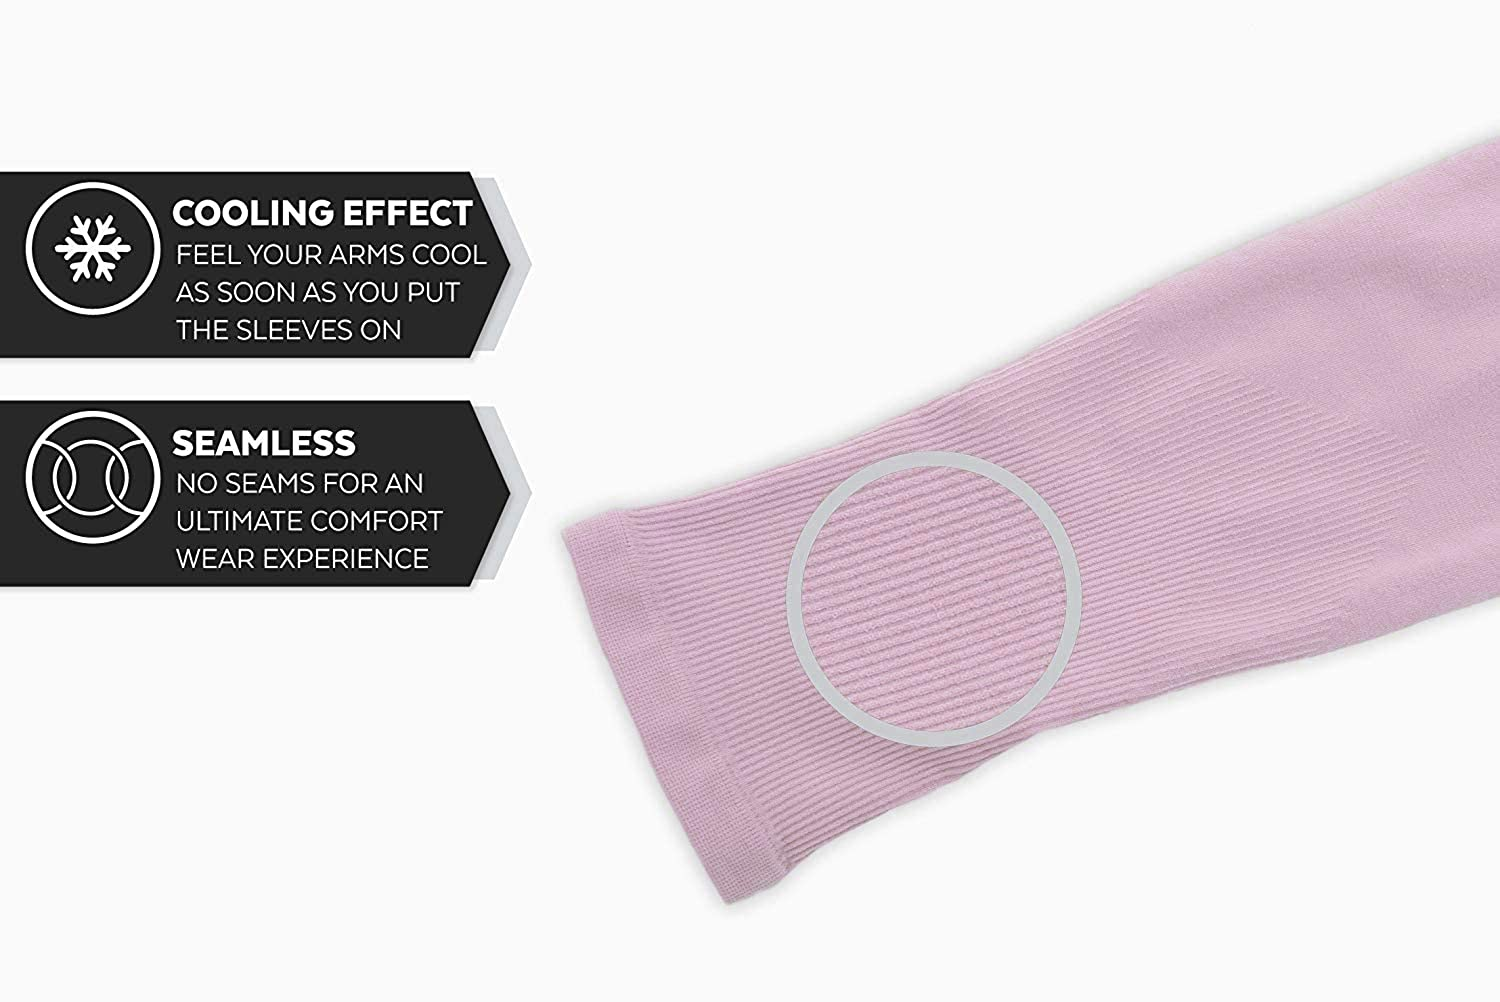 Ksnnrsng UV Protection Cooling Arm Sleeves UPF 50 Long Sun Sleeves for Men /& Women for Cycling Driving Running Basketball Football /& Outdoor Activities Performance Stretch /& Moisture Wicking